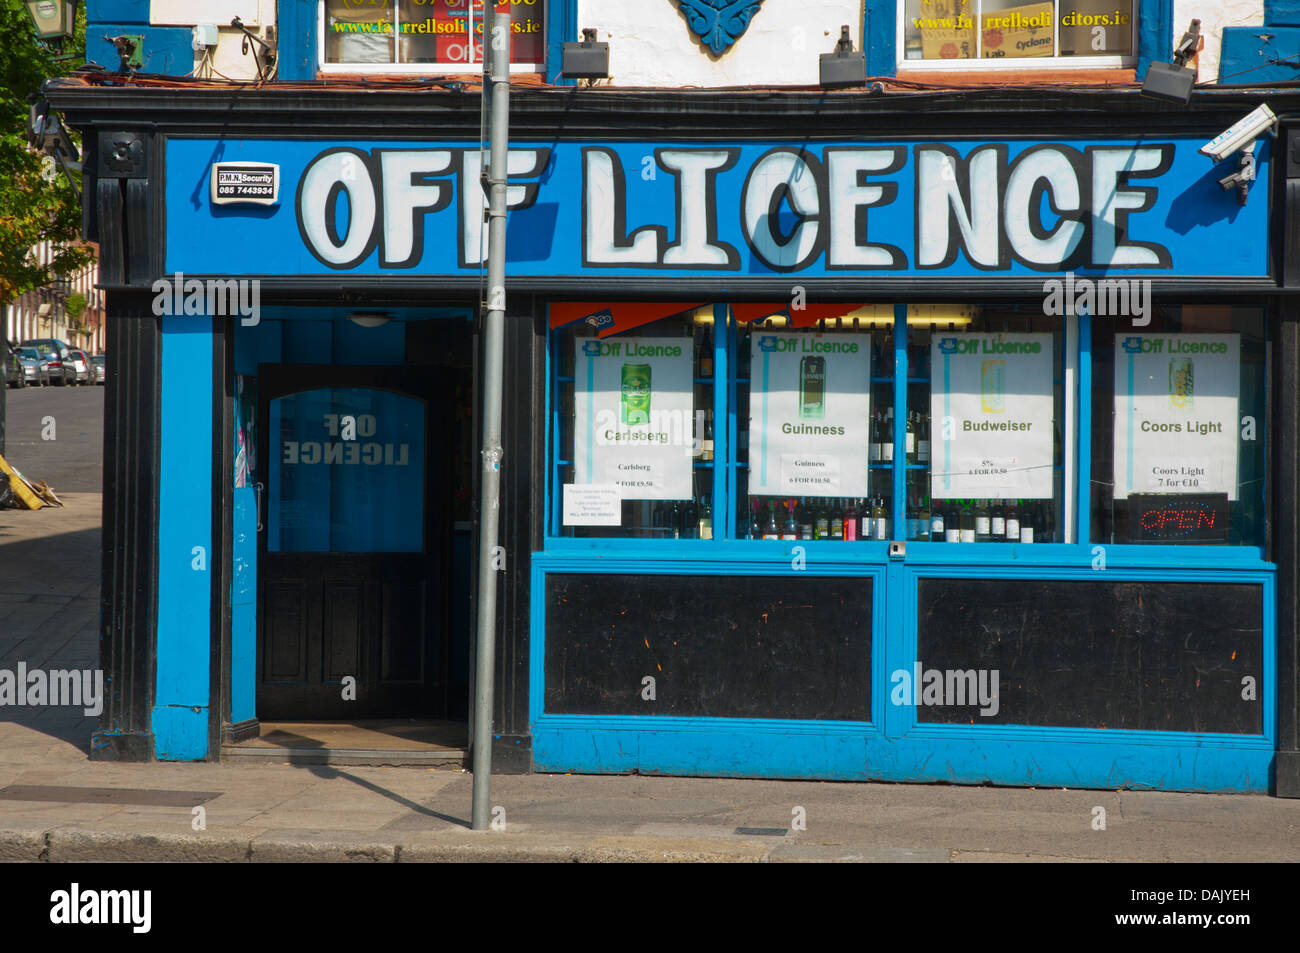 Off licence an alcohol beverage shop exterior Parnell street northside Dublin Ireland Europe - Stock Image